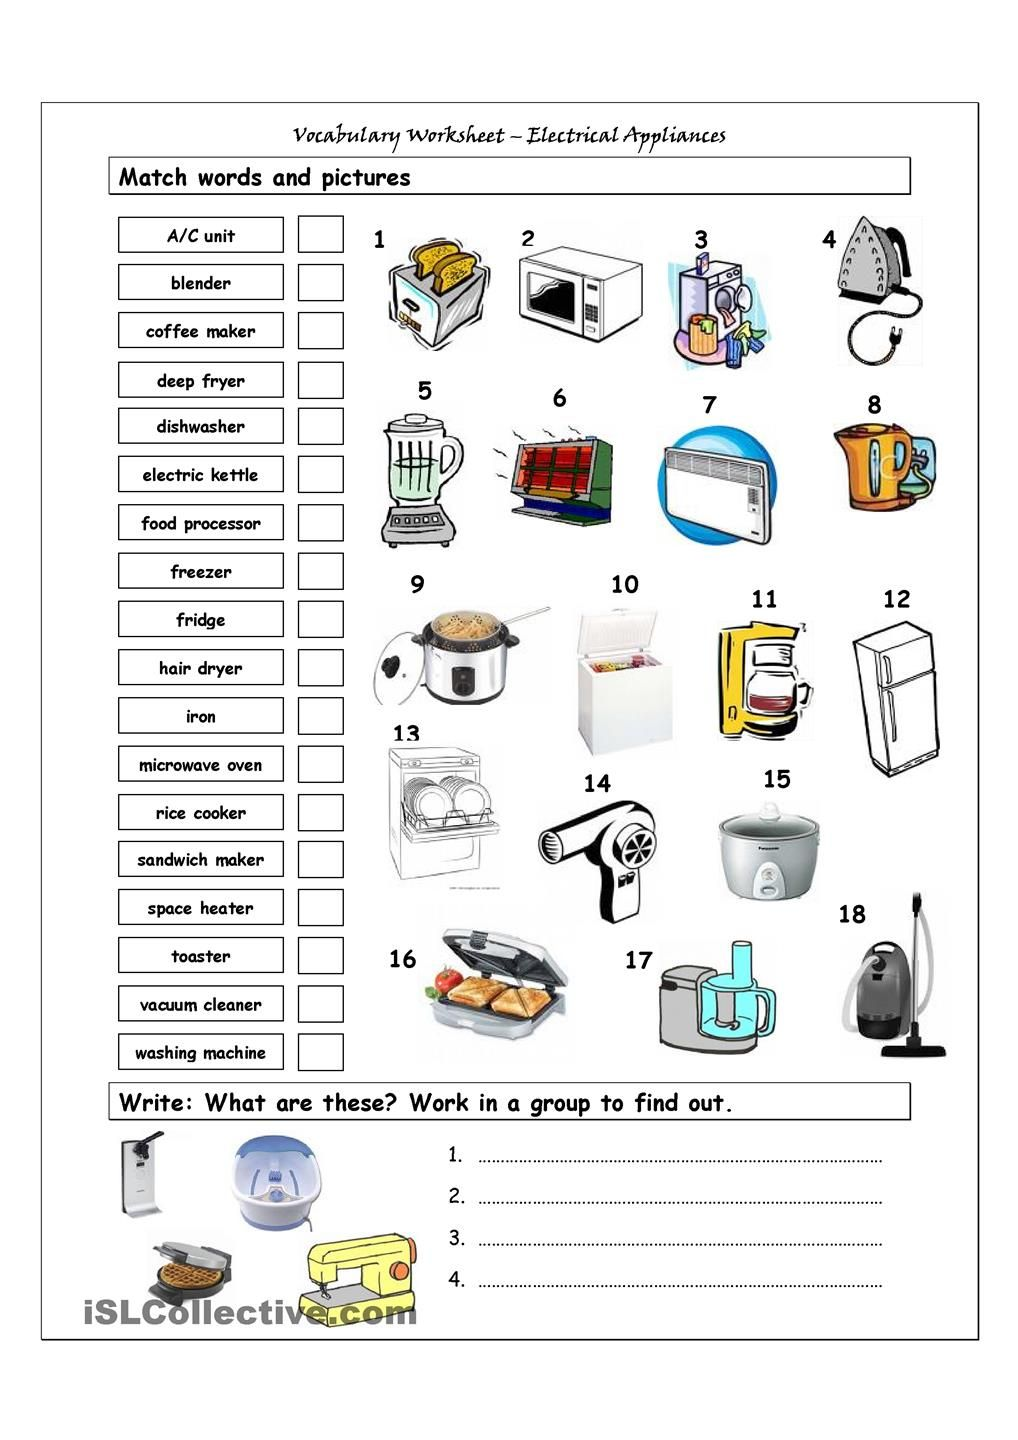 Vocabulary Matching Worksheet HOME APPLIANCES